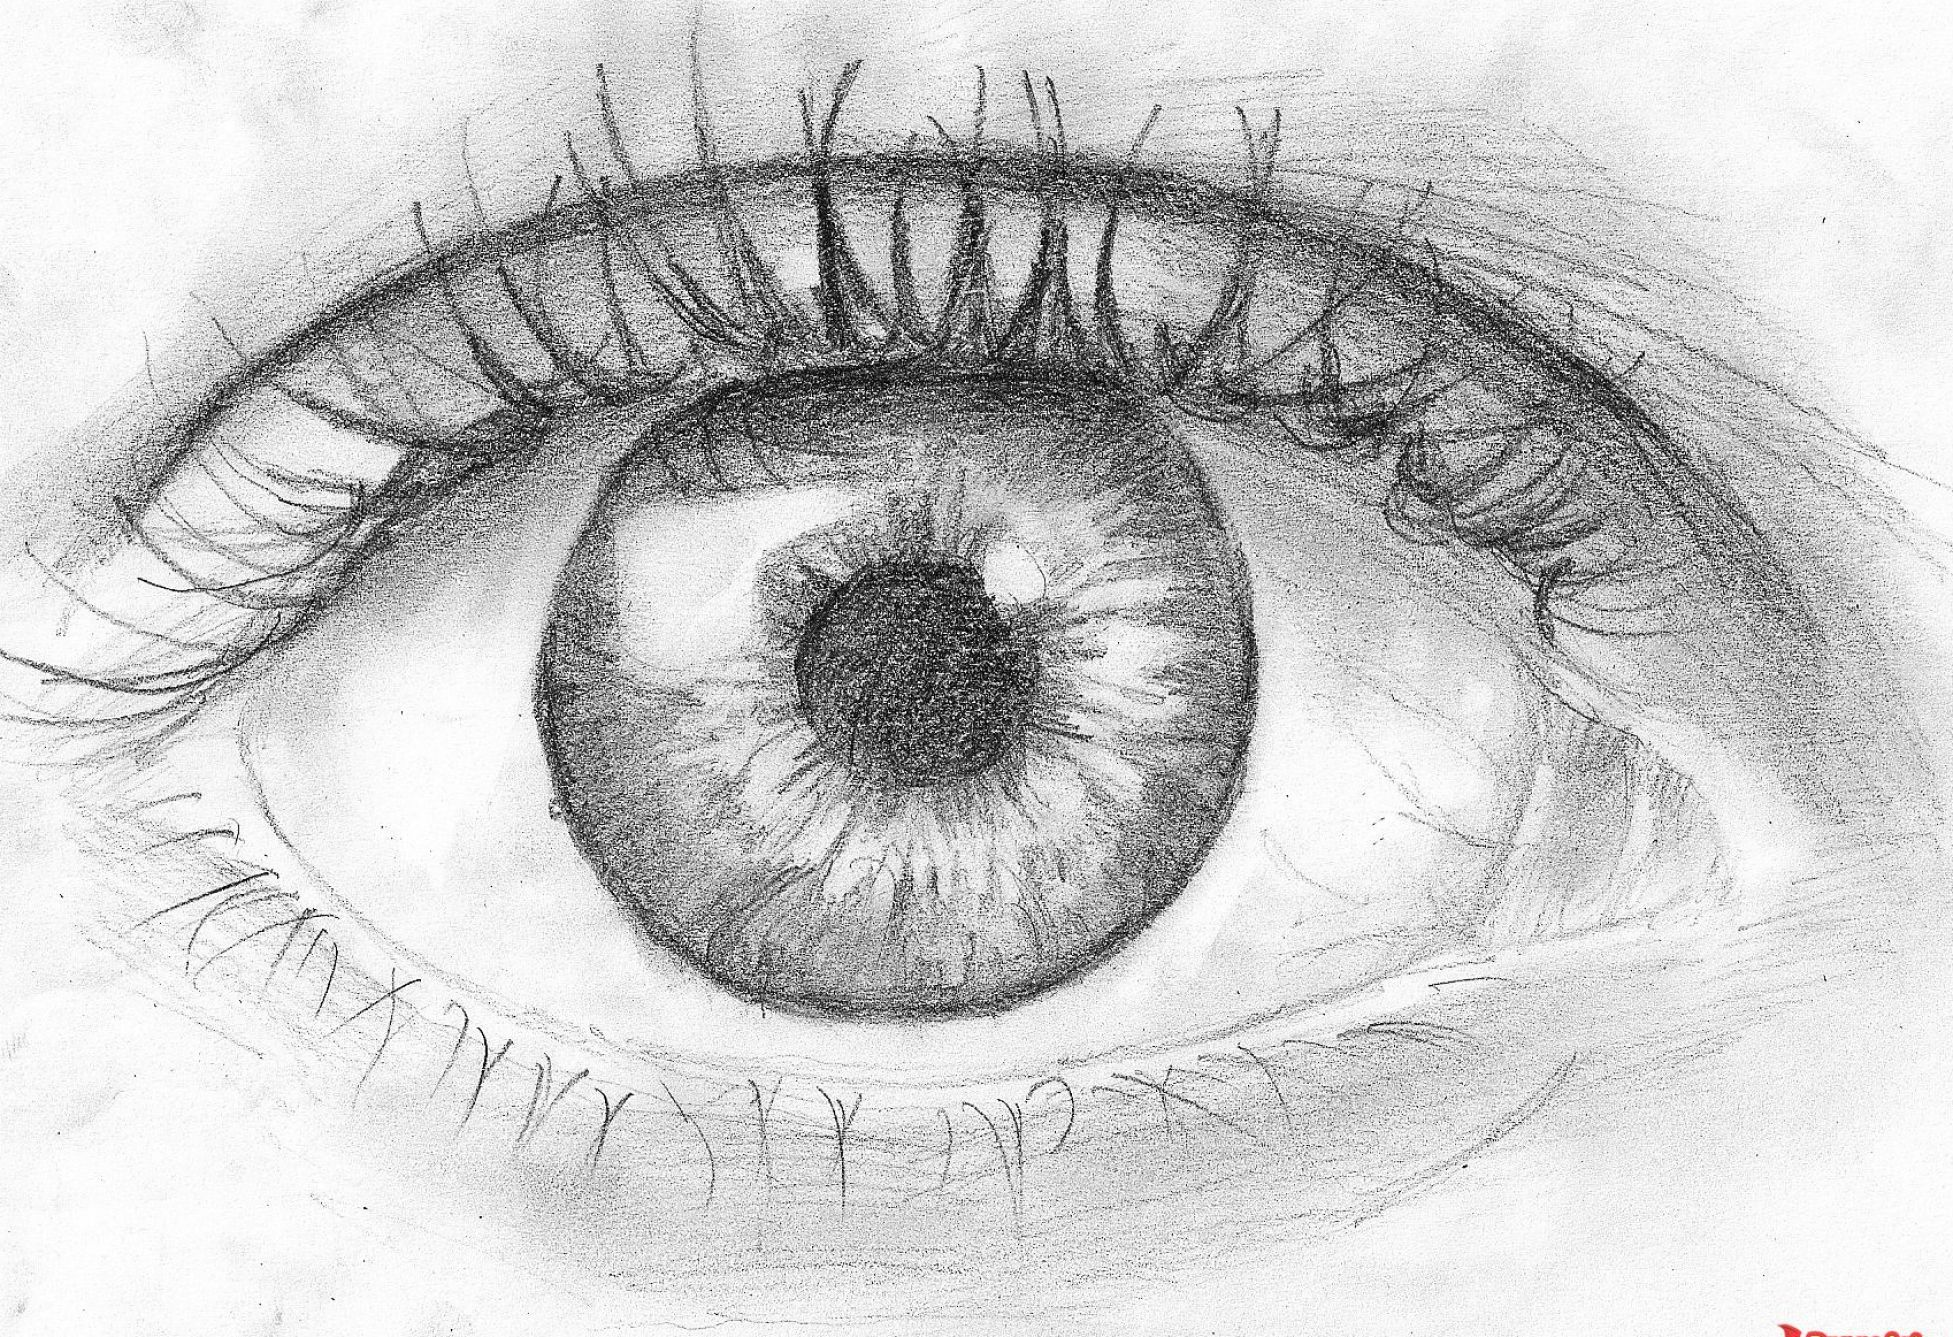 How to draw nature sketches amazingly simple for beginners - Famous Flying Eyeball Drawing Flying Eye Csp10335801